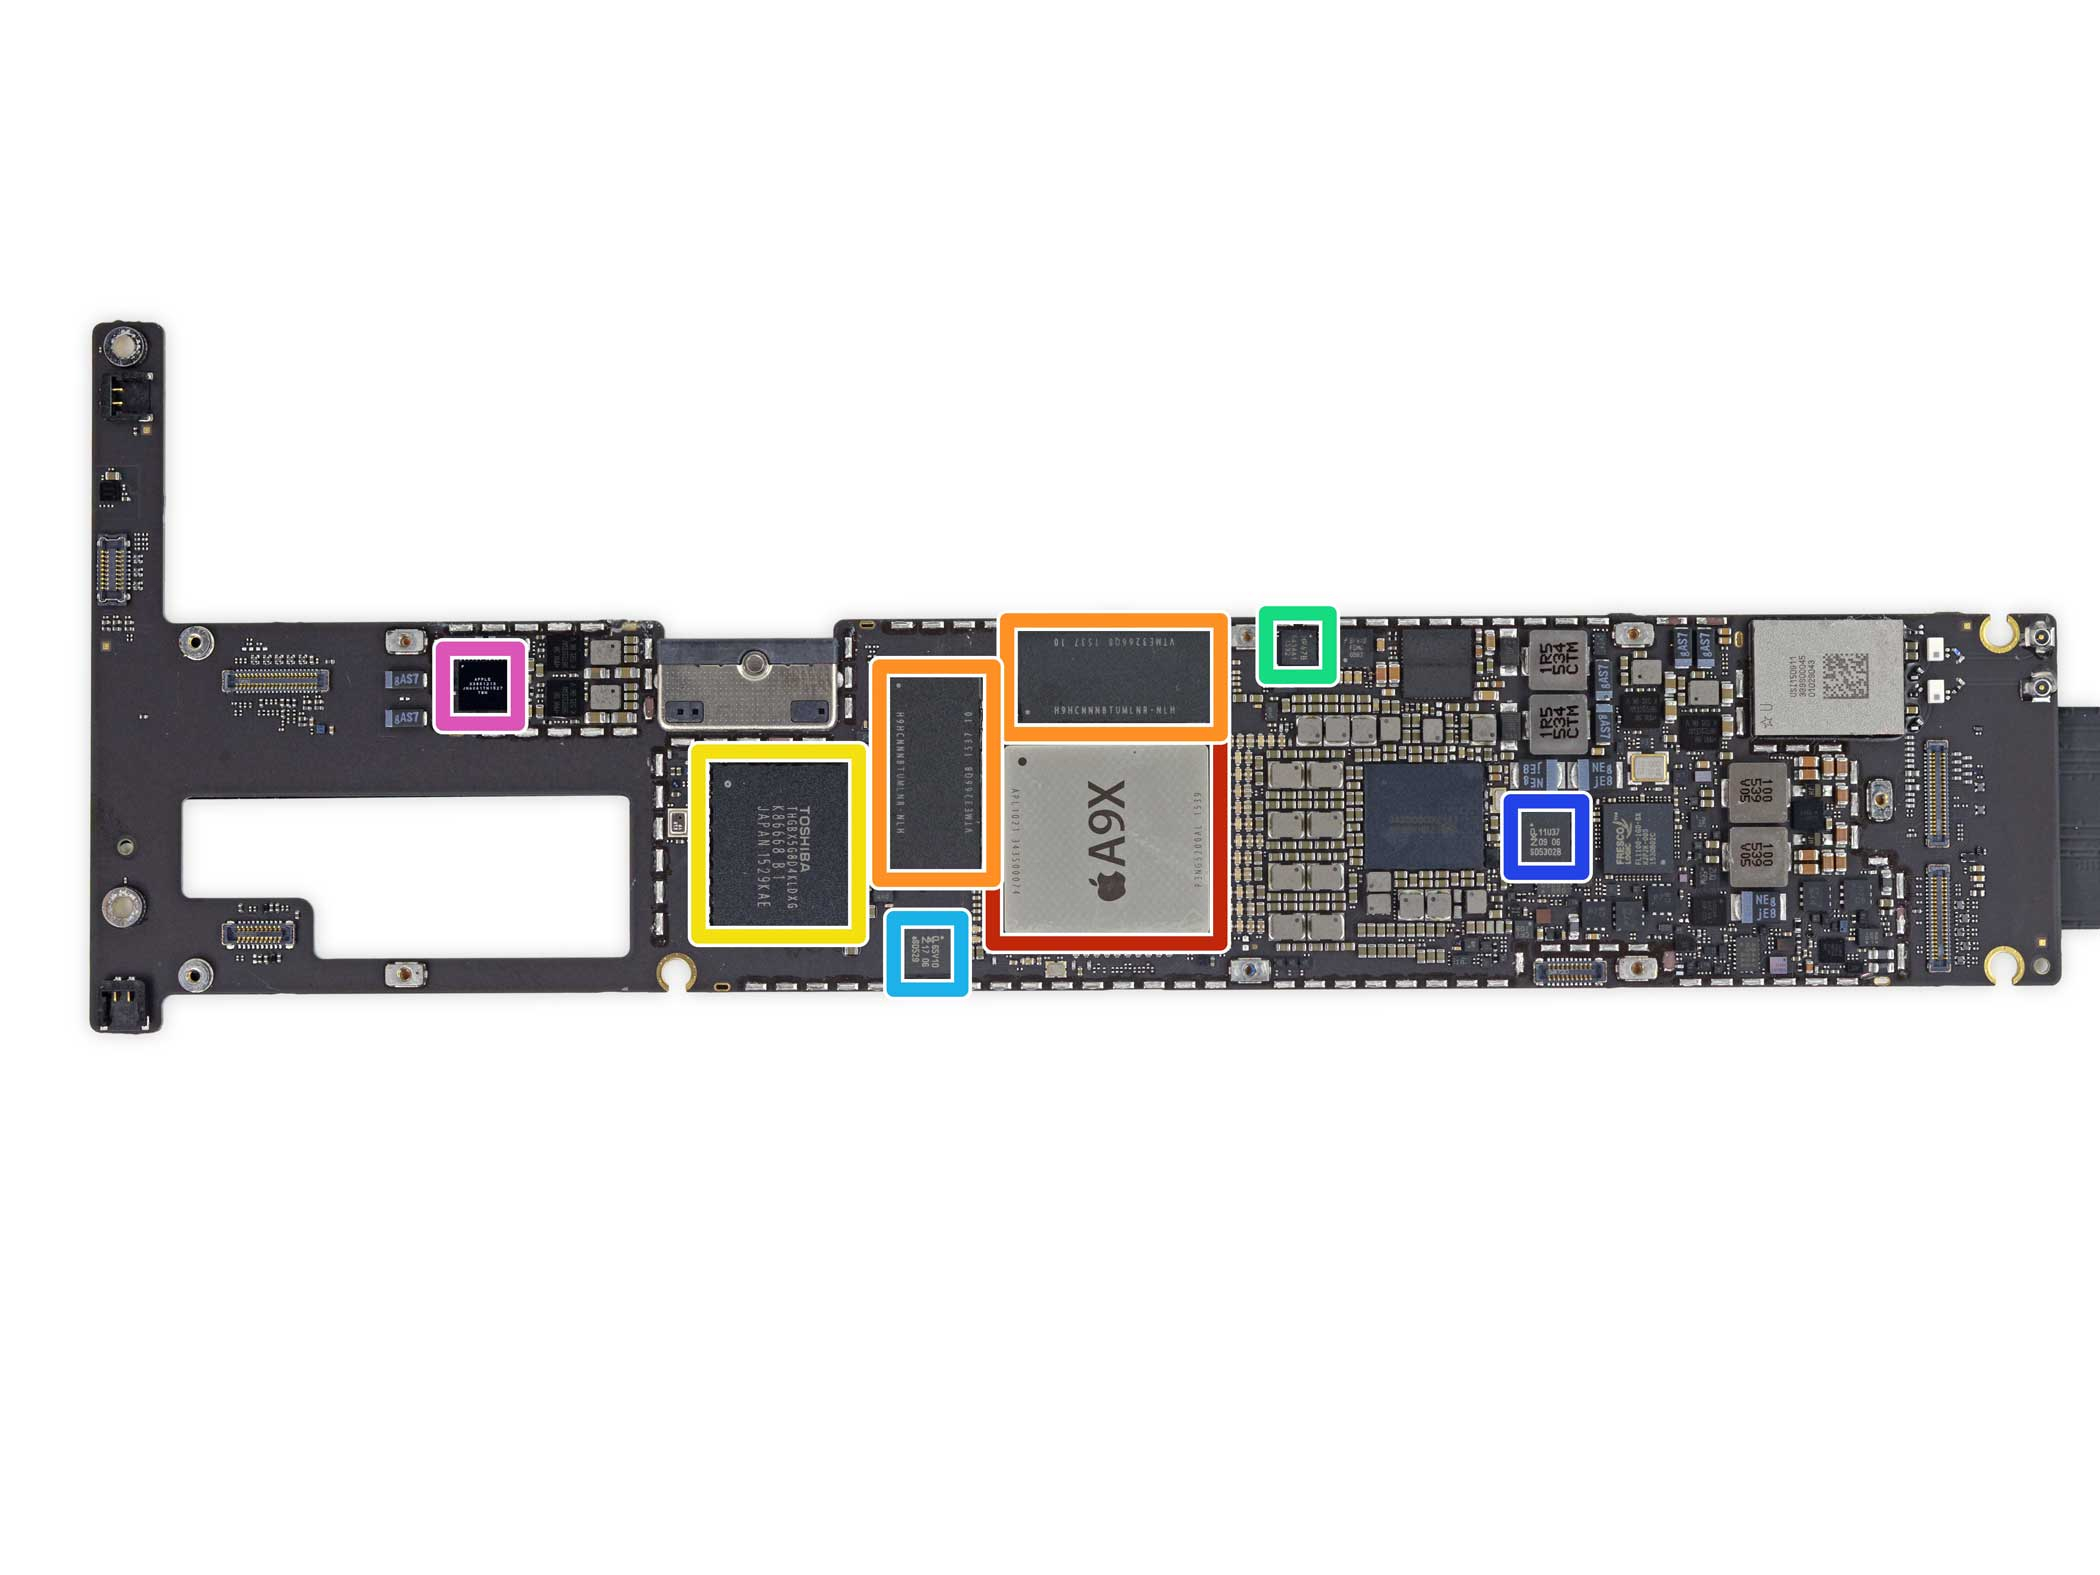 This is the logic board, which houses the iPad Pro's A9X chip, memory, flash storage, gyroscope, and other crucial components.